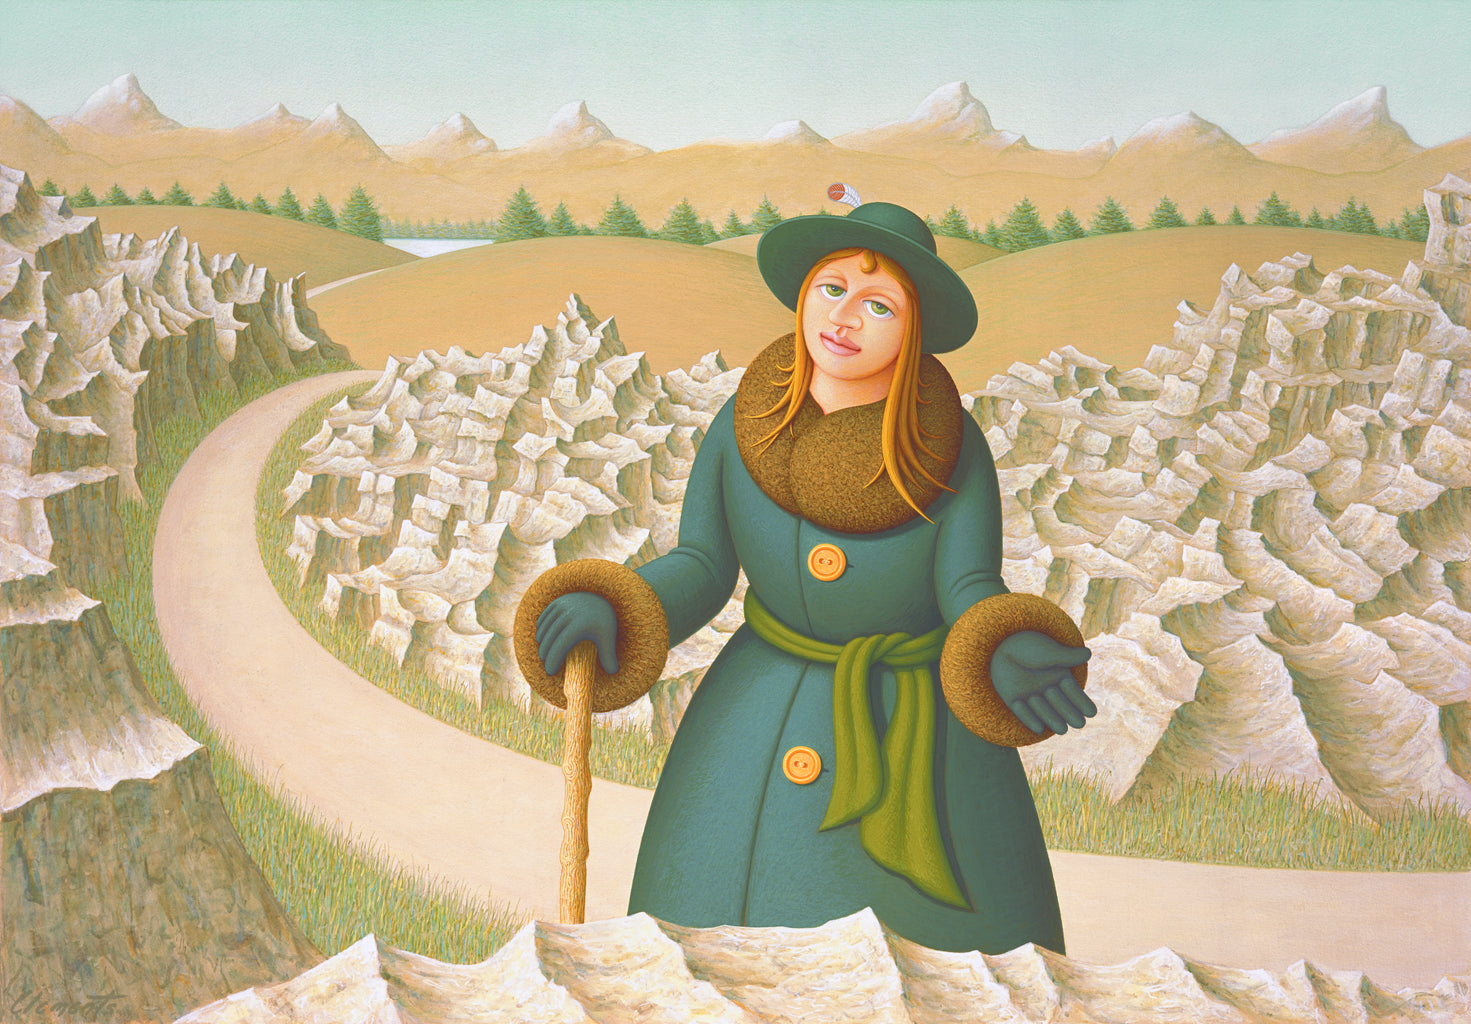 Imaginary Woman on Road with Cane and Rocks Painting Giclée Print